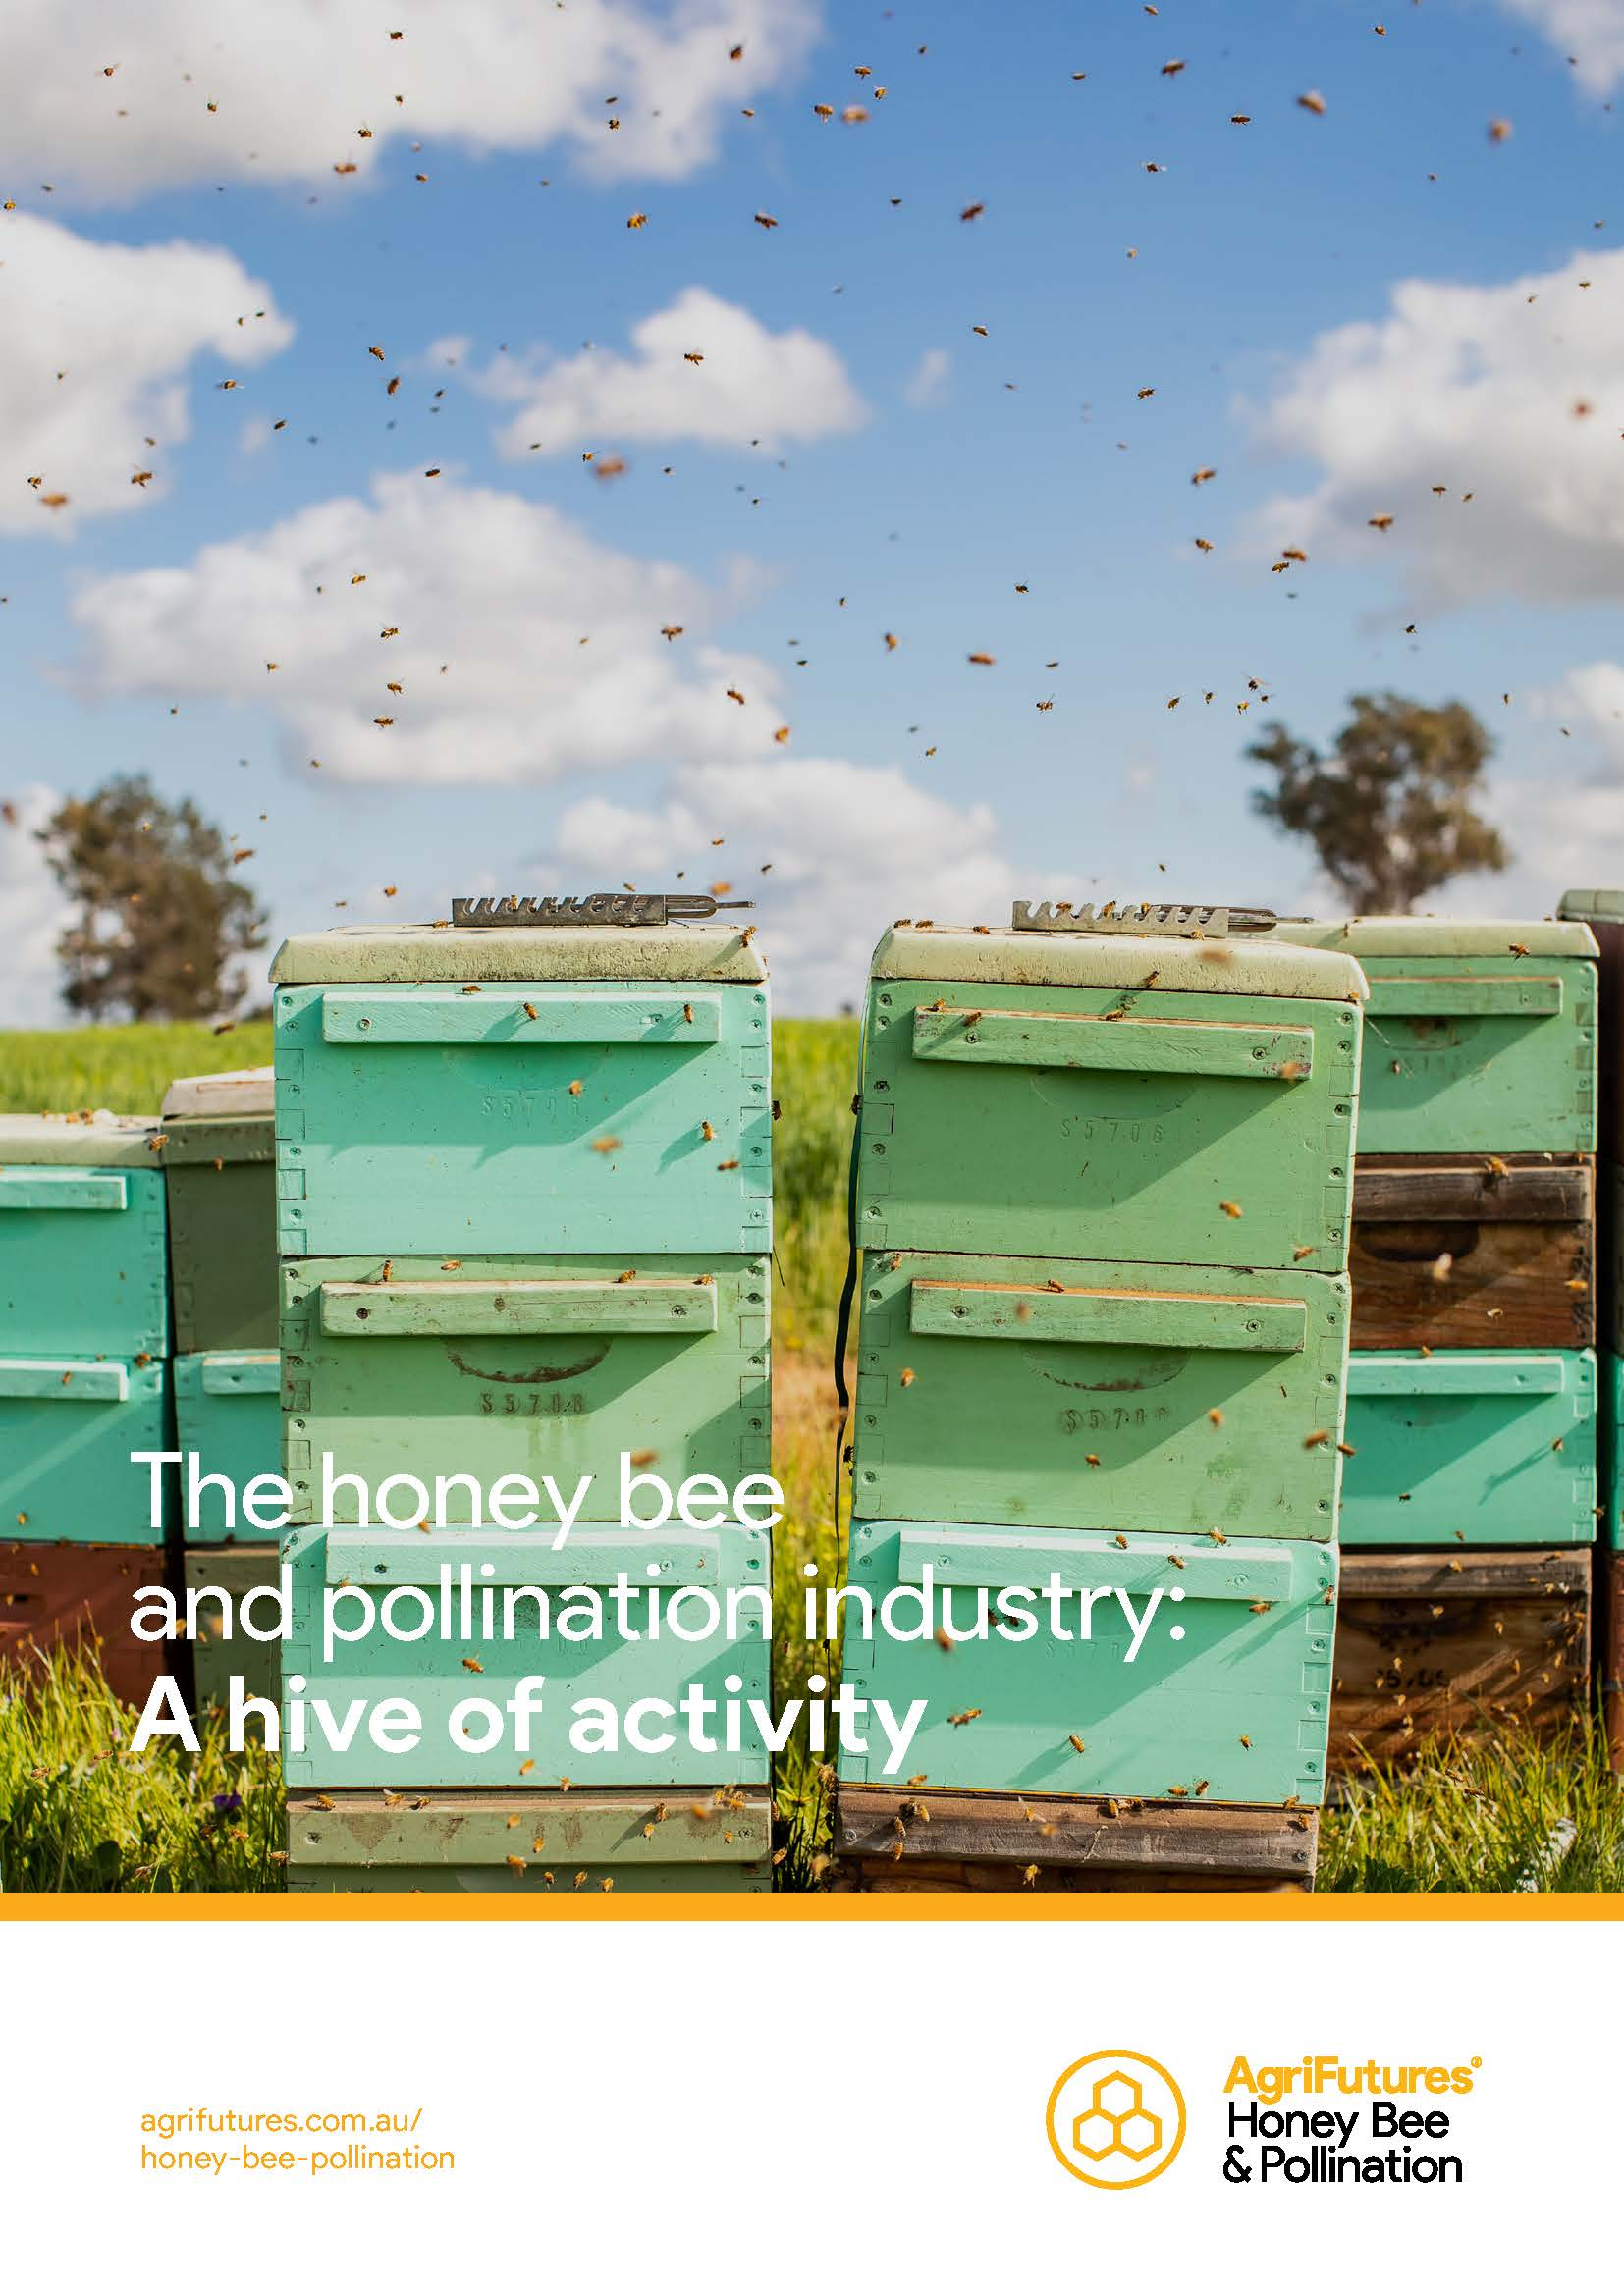 The honey bee and pollination industry: A hive of activity - image